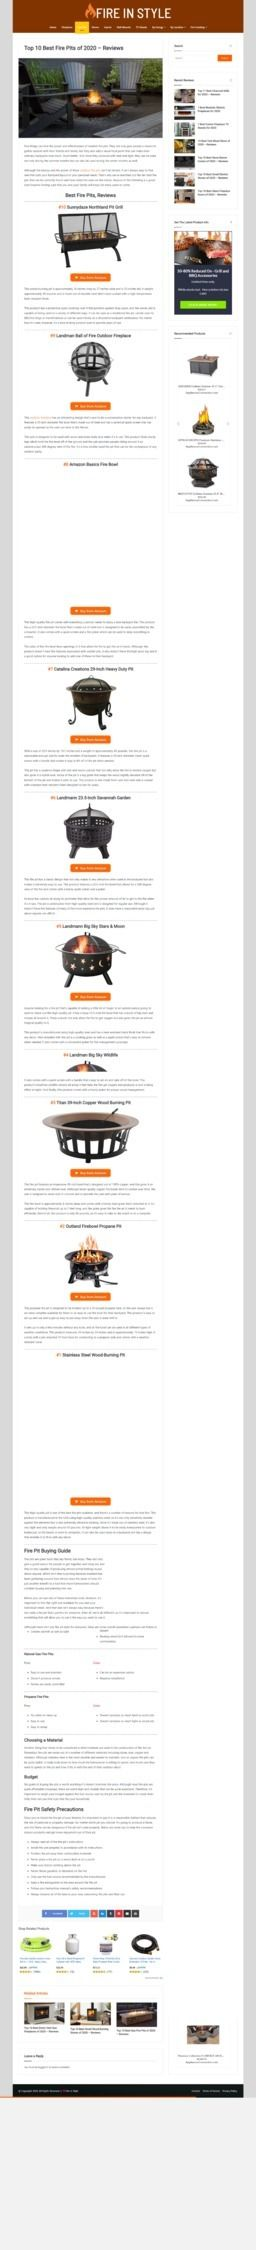 Fire Pits FireInStyle.com place - fireinstyle   ello